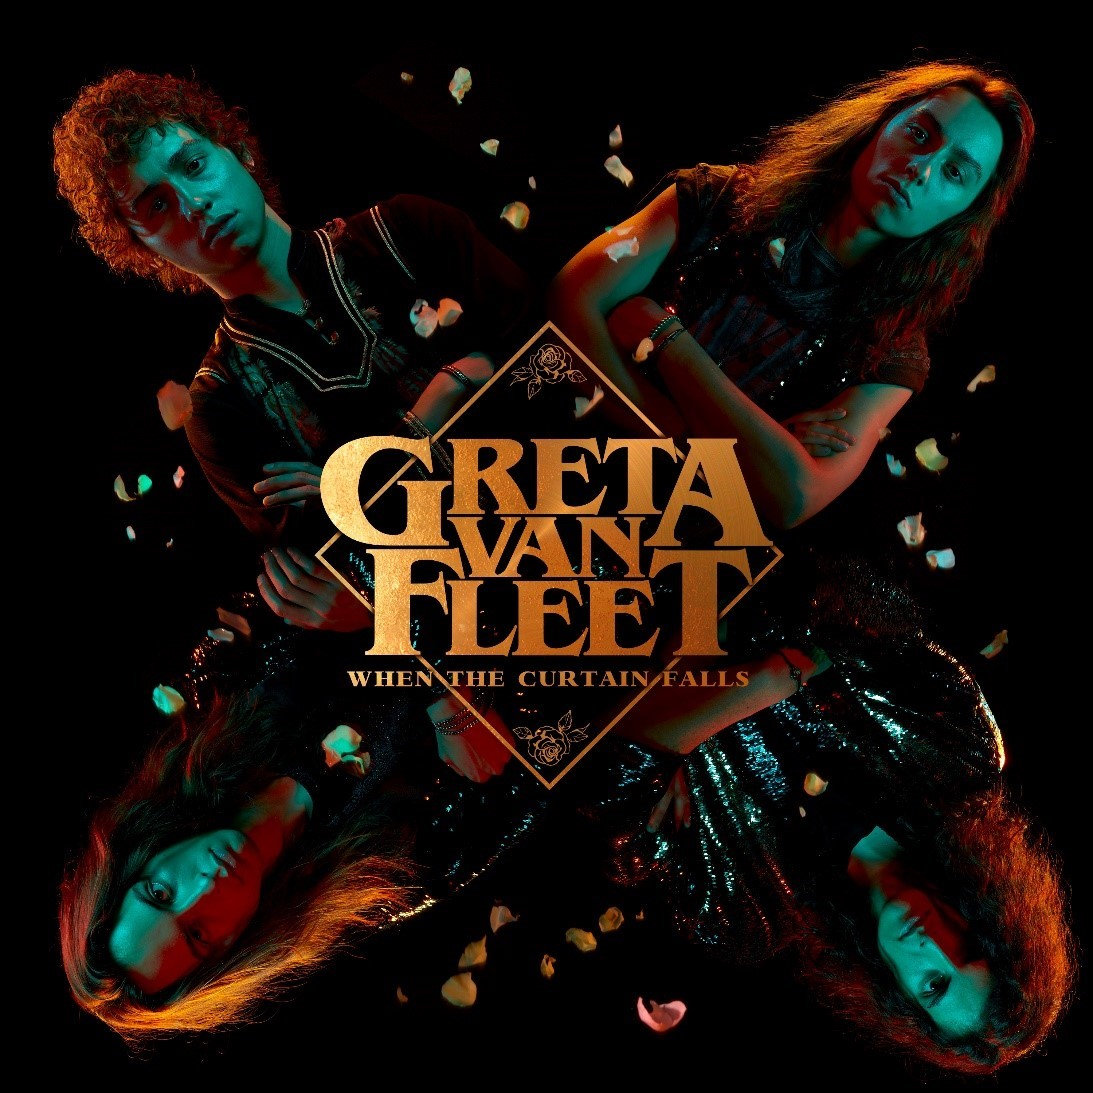 Greta Van Fleet When the Curtain Falls